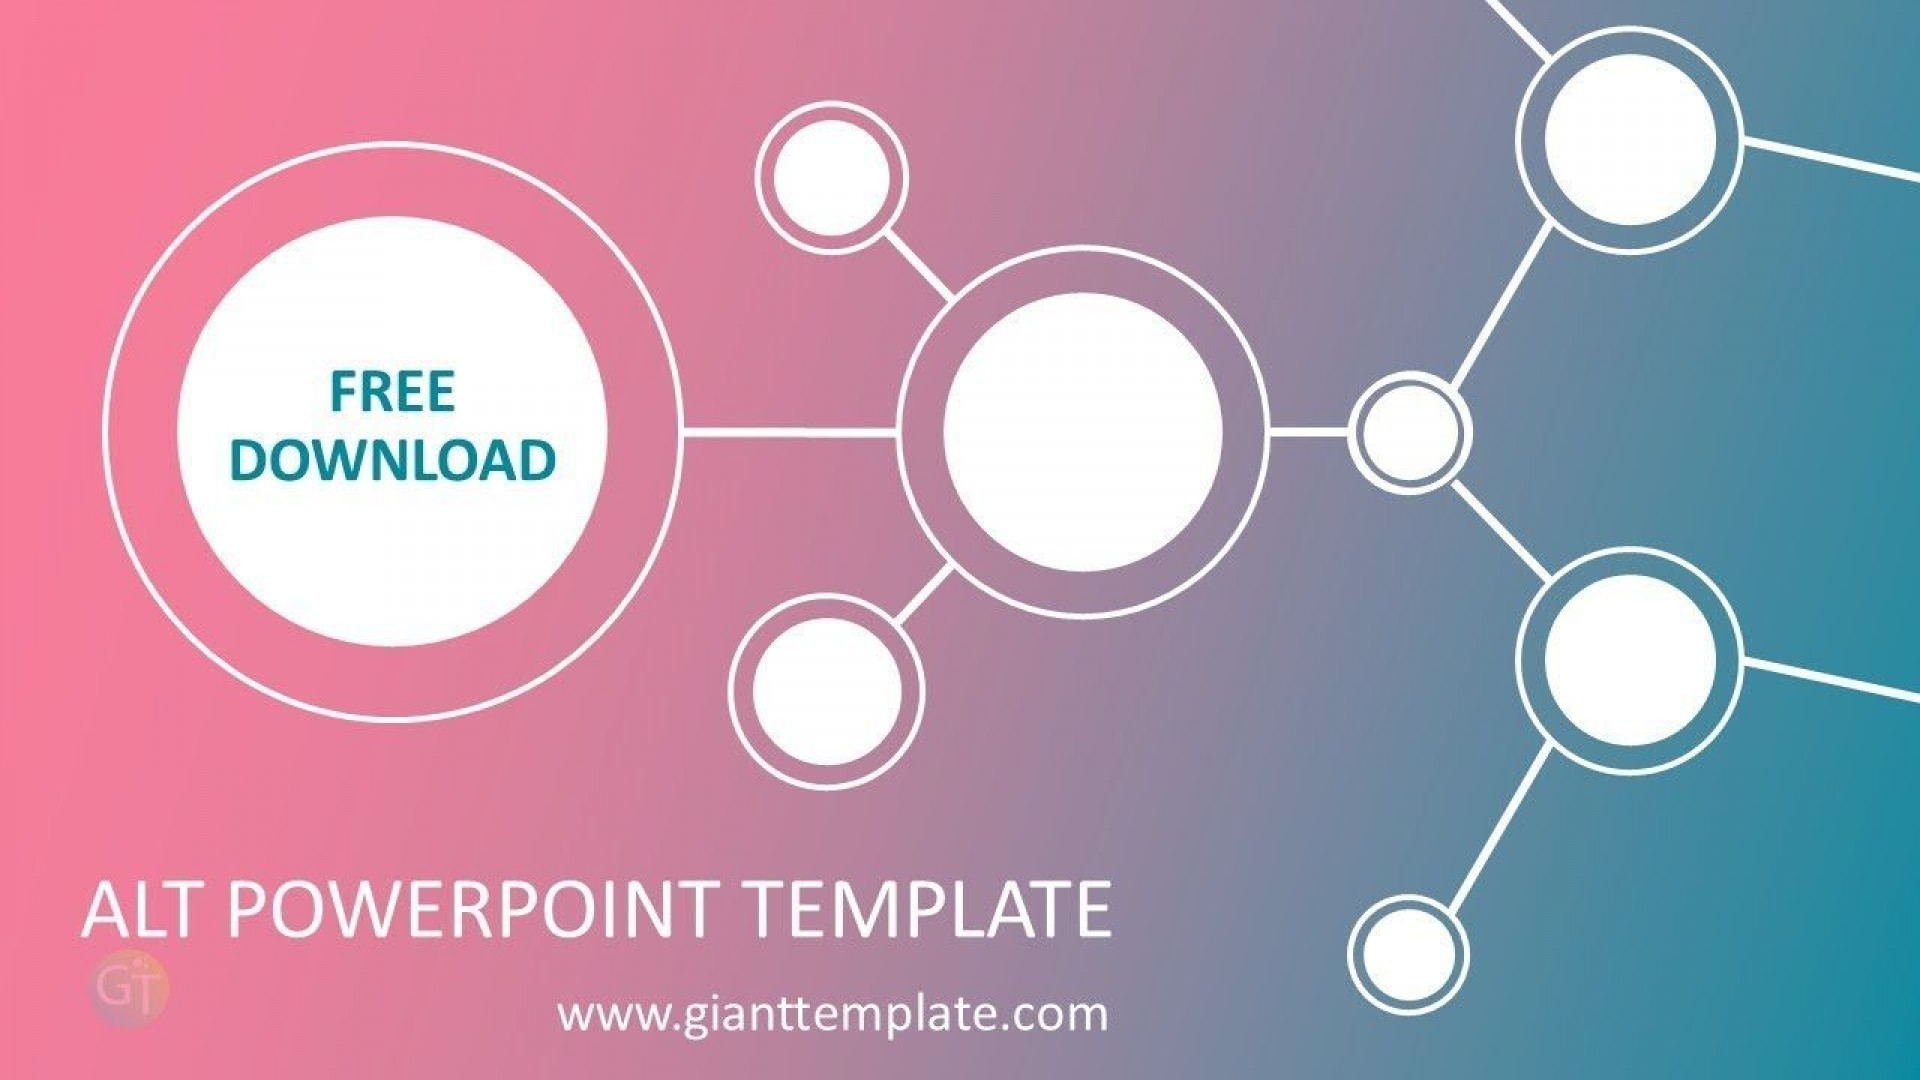 003 Astounding Animated Powerpoint Template Free Download 2016 Highest Quality  3d1920